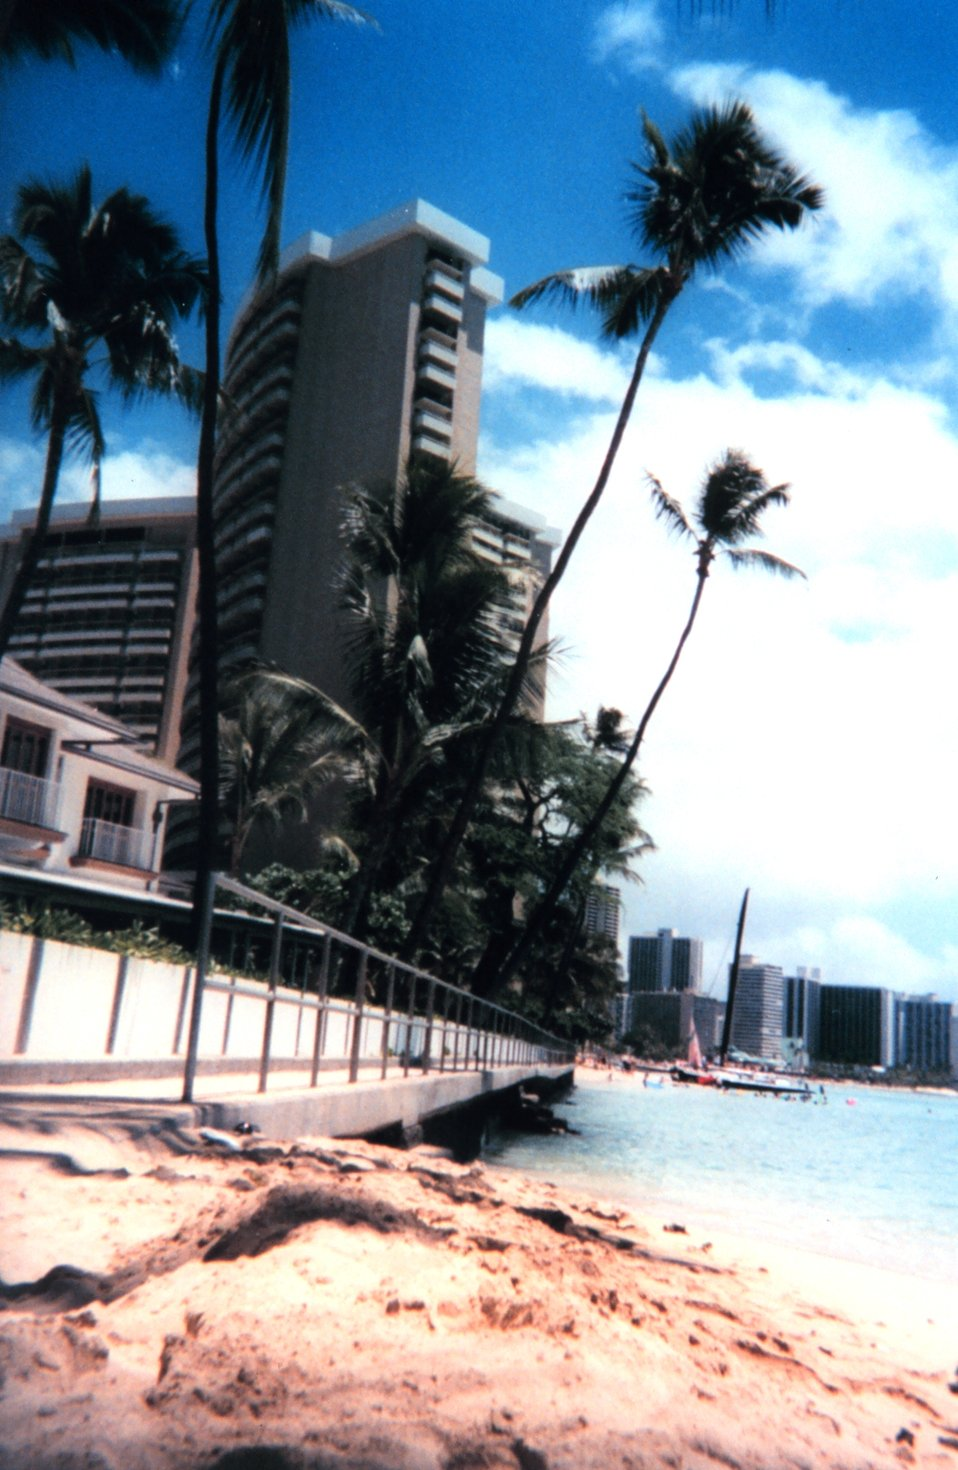 Hotels and palm trees at Waikiki.